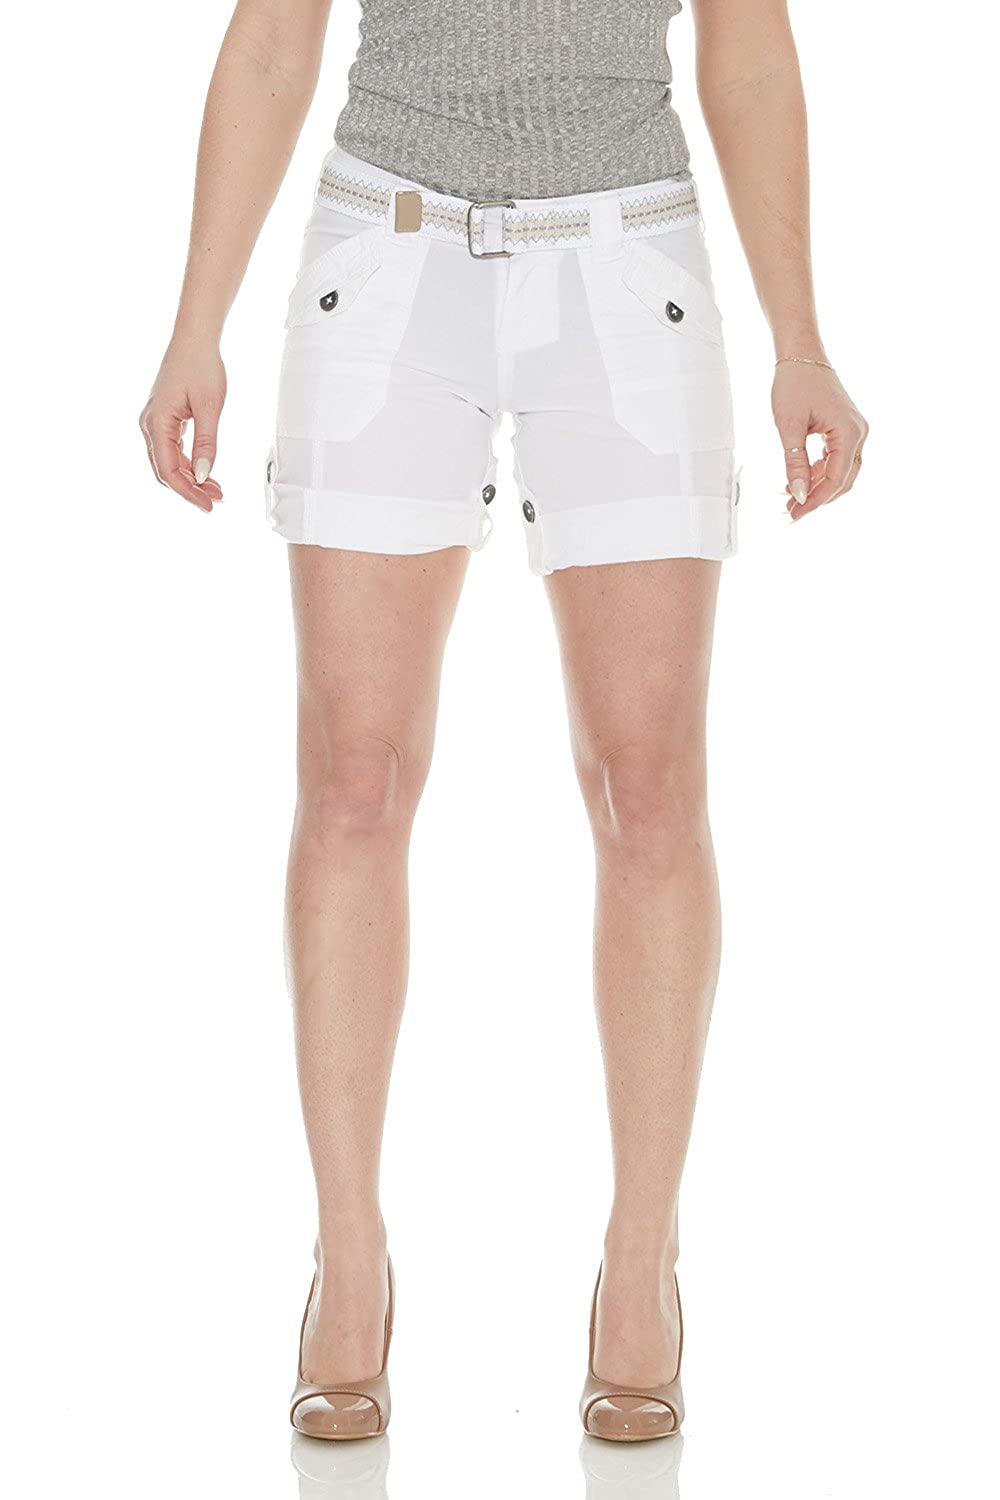 729af232dfb Button Fly closure. Suko Women s Adjustable Length Cargo Bermuda Shorts  With Belt Size 2 - 22 Plus The Suko poplin capris are made from the perfect  cotton ...